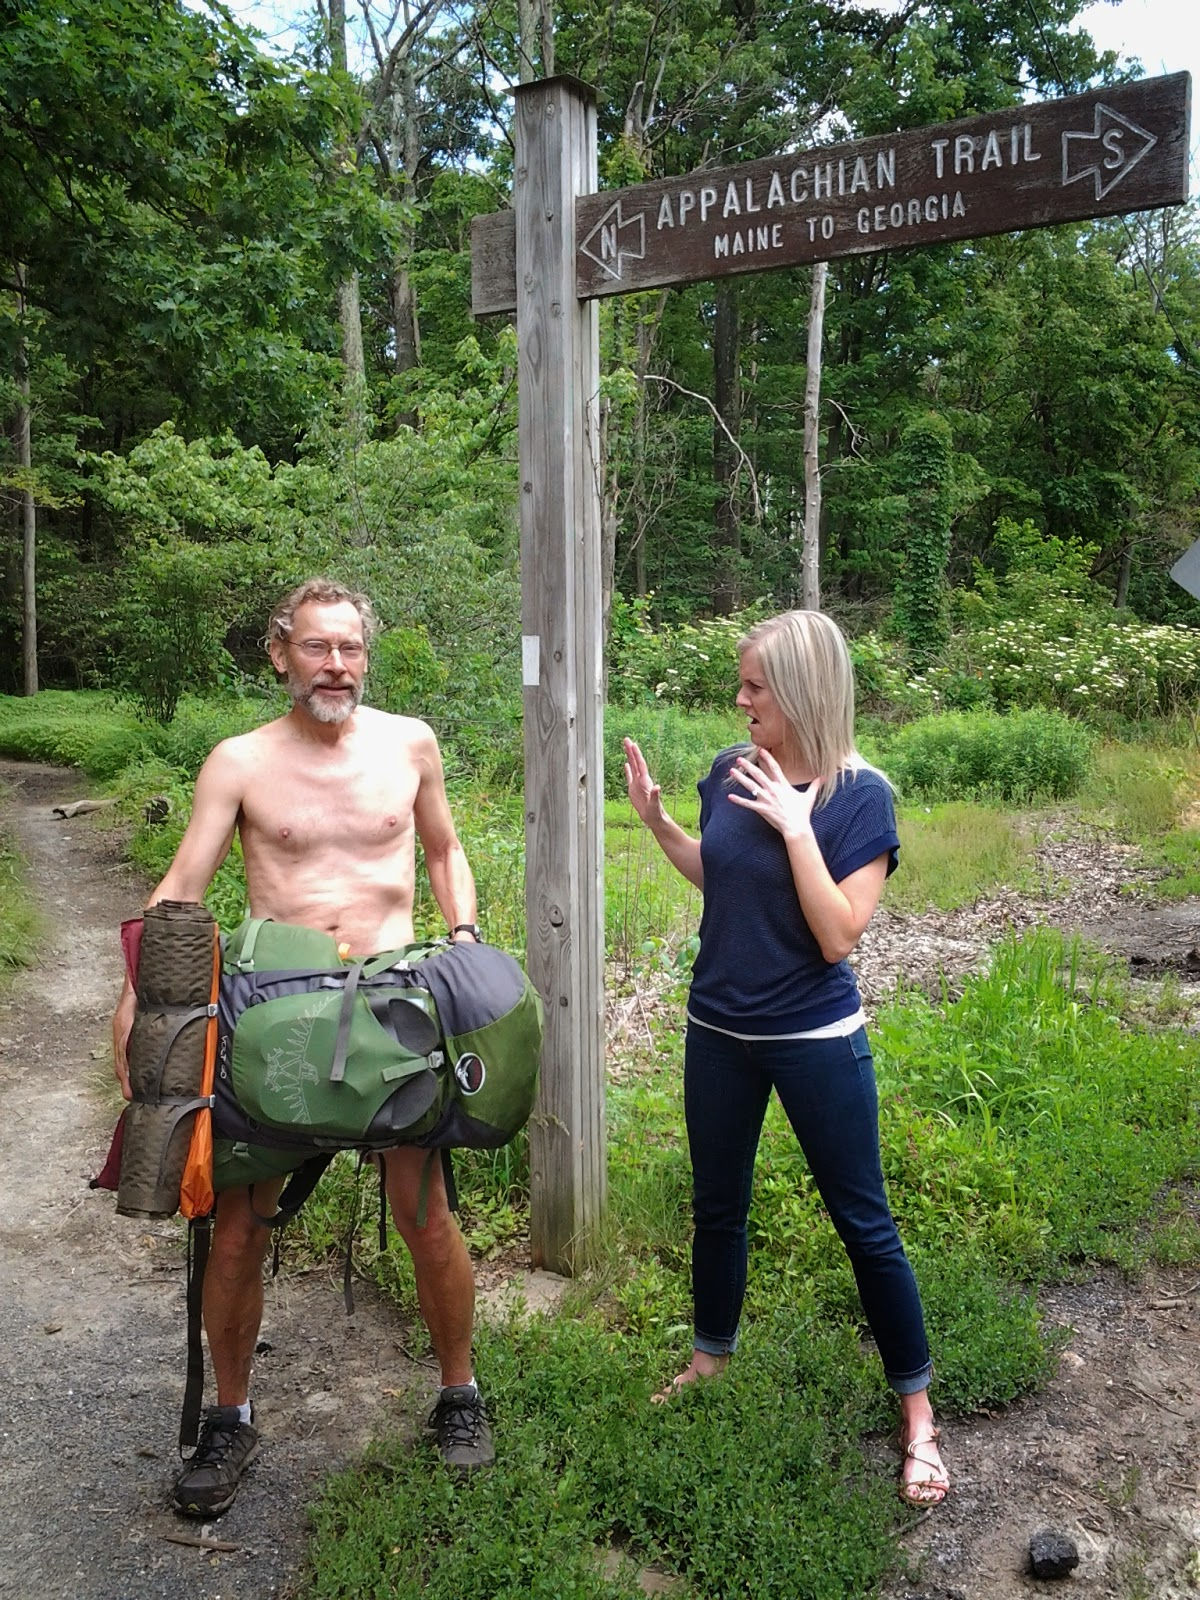 I Guess I Should Have Warned Steph That She Would Be Picking Me Up On Hike Naked Day